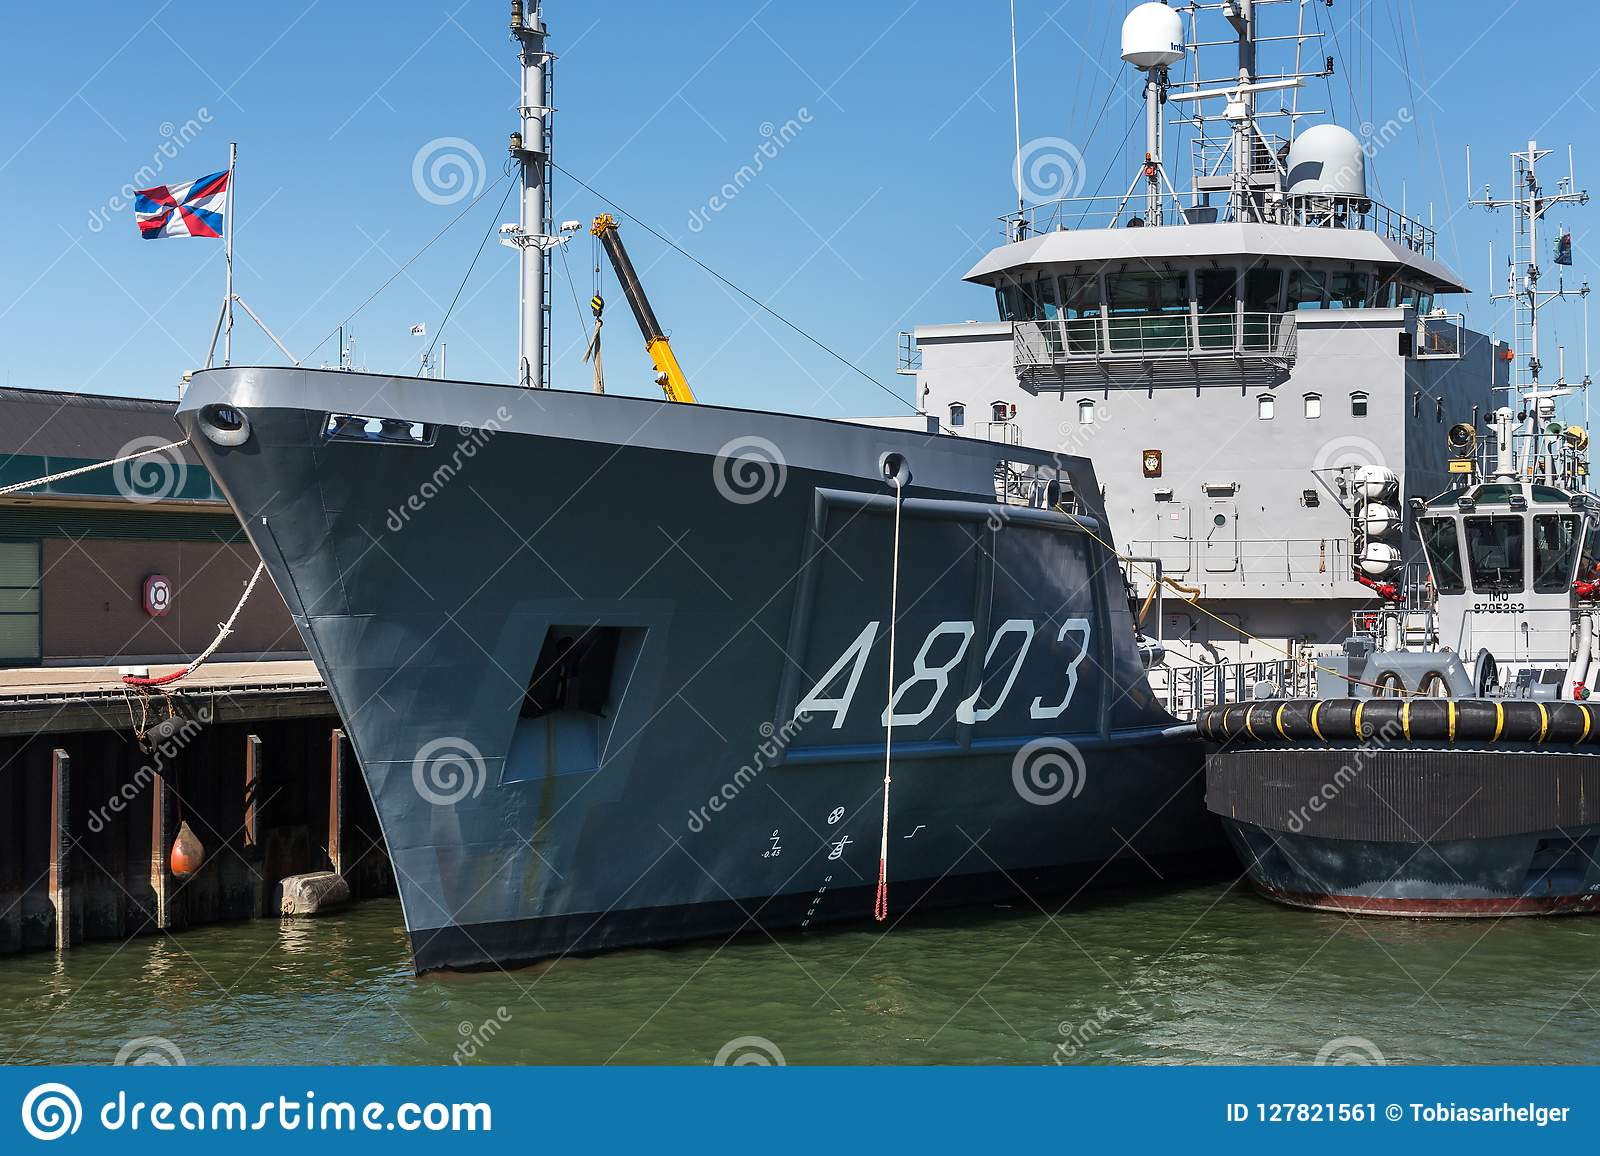 The hague, the hague/netherlands - 01 07 18: surveying ship hr ms luymes in the port of the hague netherlands